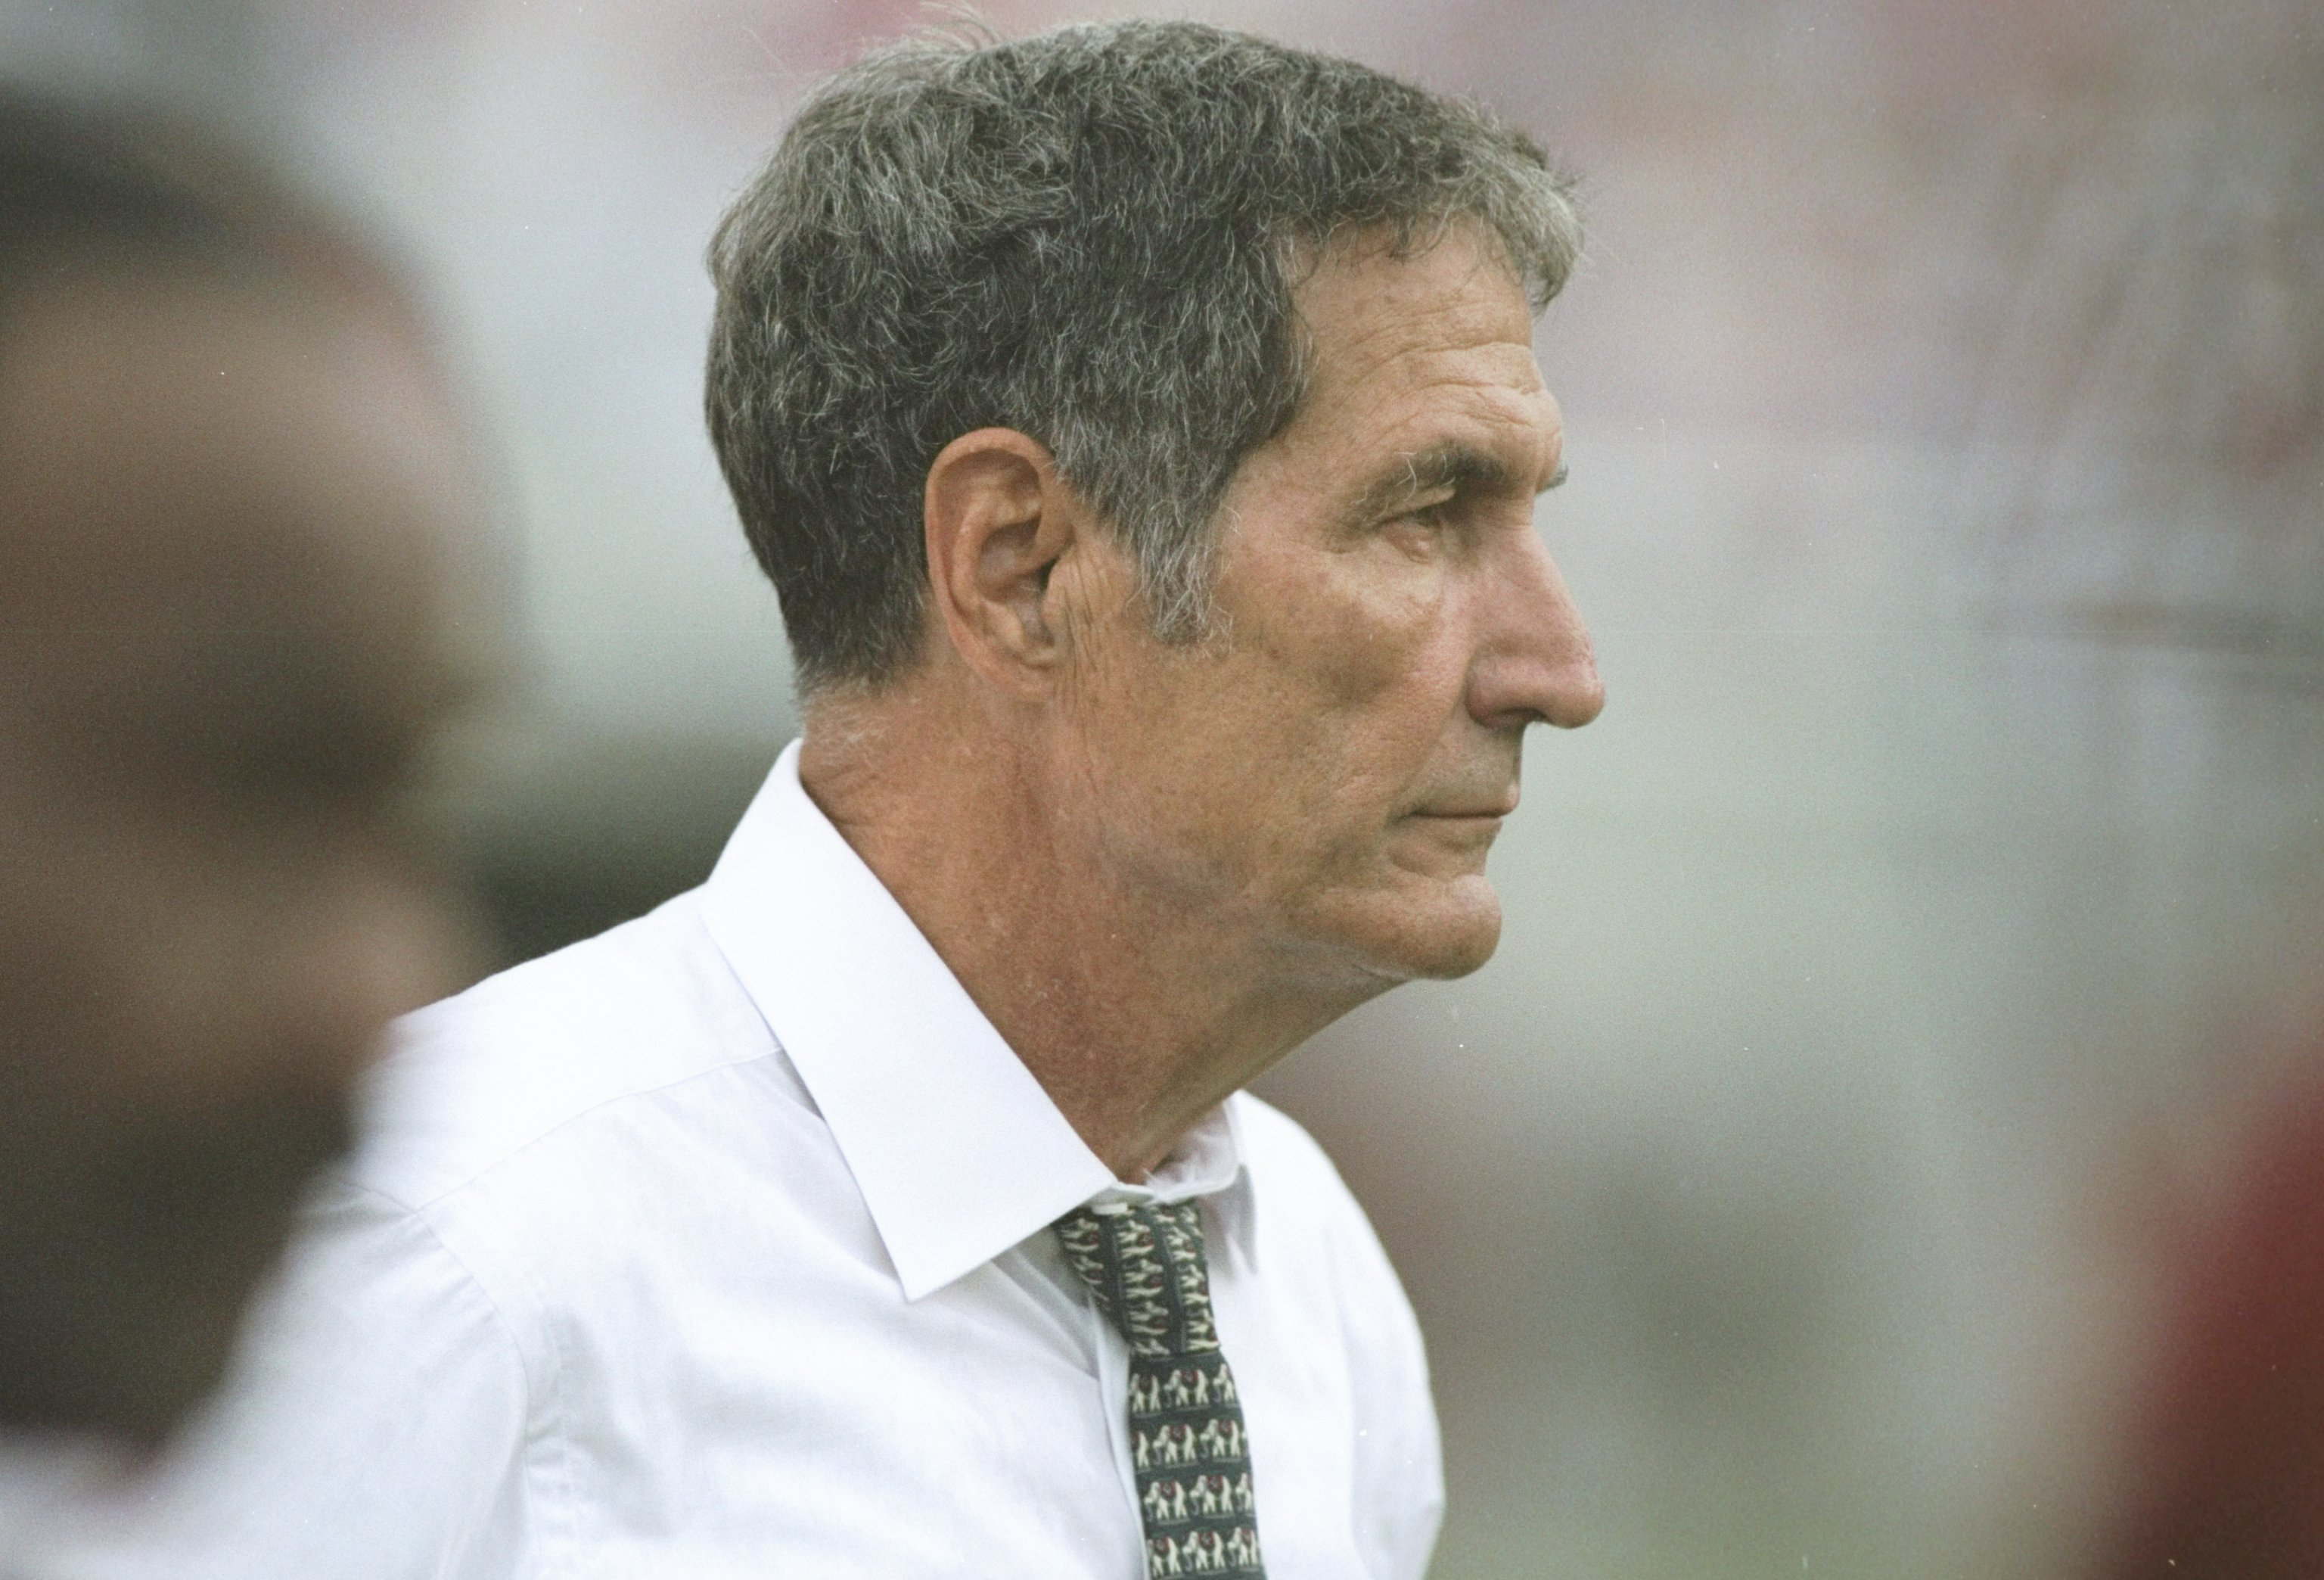 16 Sep 1995: Coach Gene Stallings of the Alabama Crimson Tide watches his players during a game against the Arkansas Razorbacks in Tucsawosa, Alabama. Arkansas won the game 20-19.